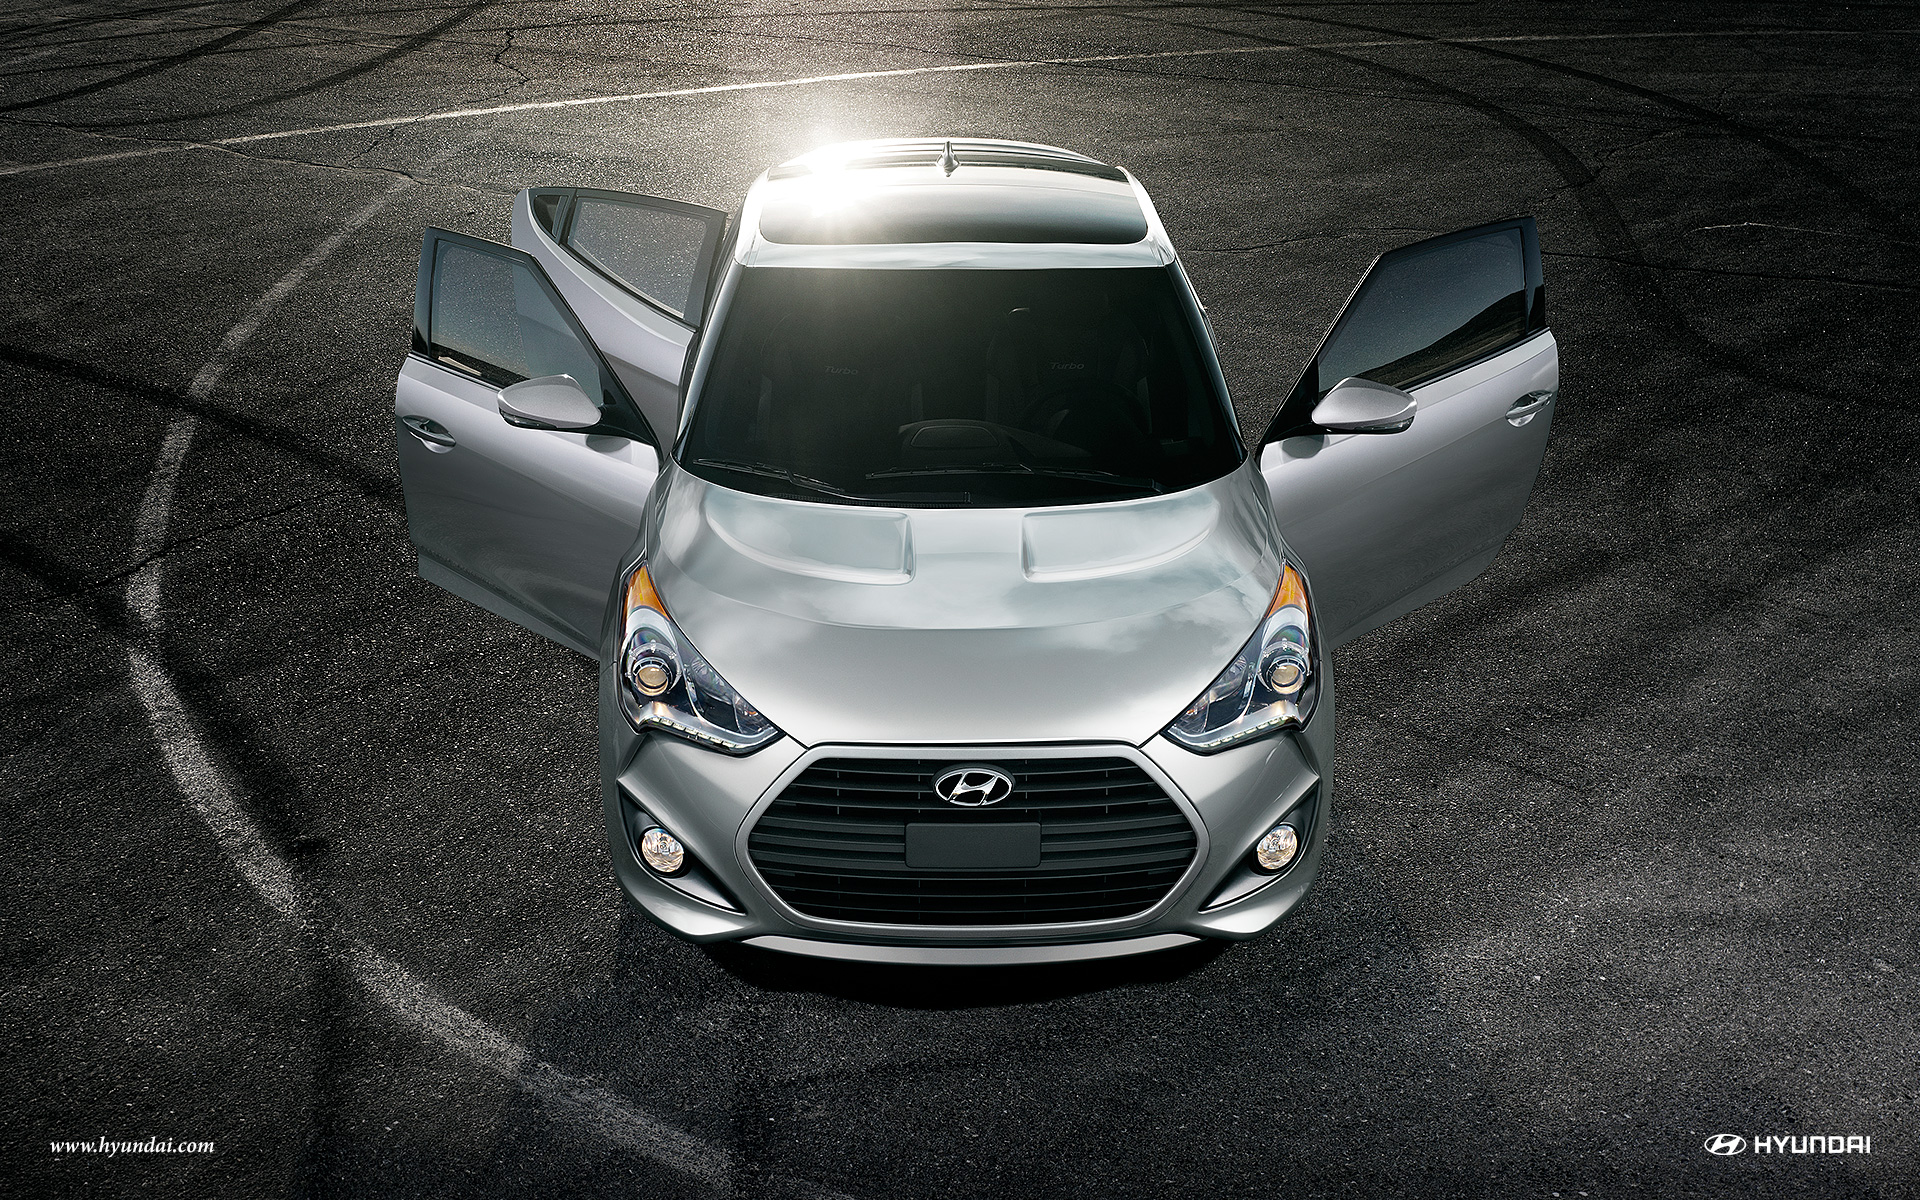 image turbo r post spec veloster wallpaper hyundai black